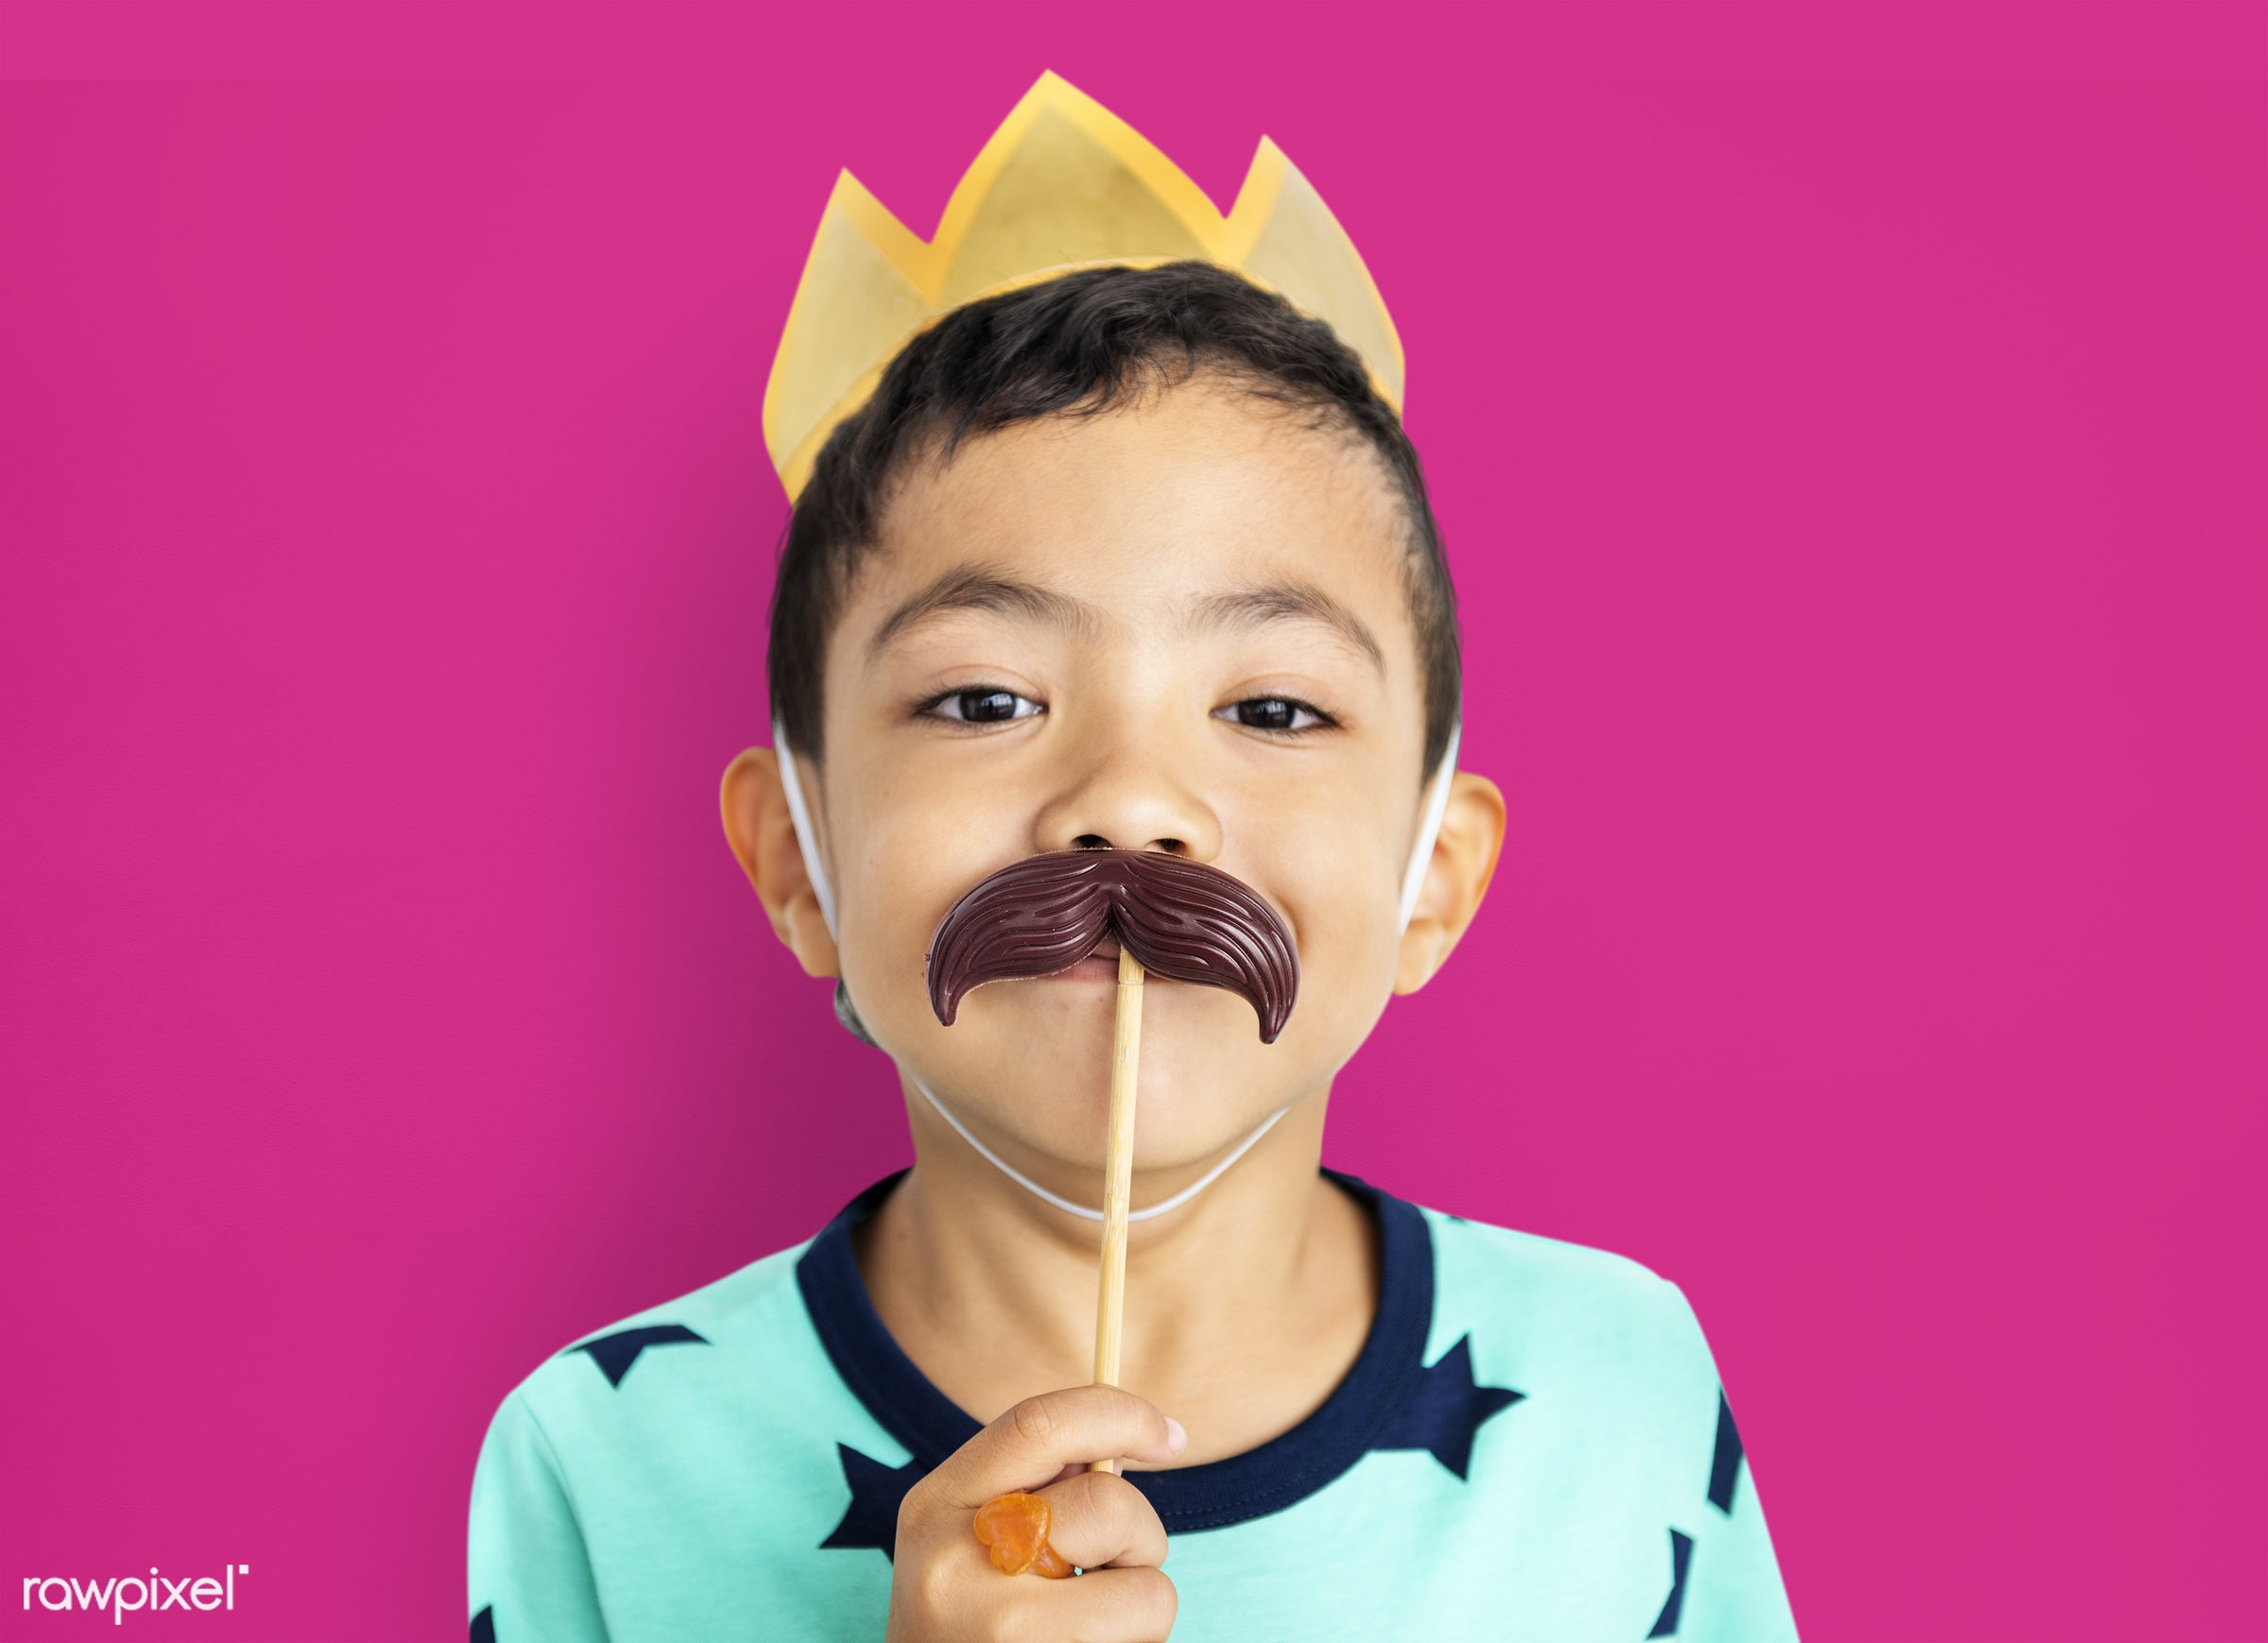 studio, expression, person, crown, cute, pretty, people, king, child, happy, casual, childhood, cheerful, smiling, isolated...